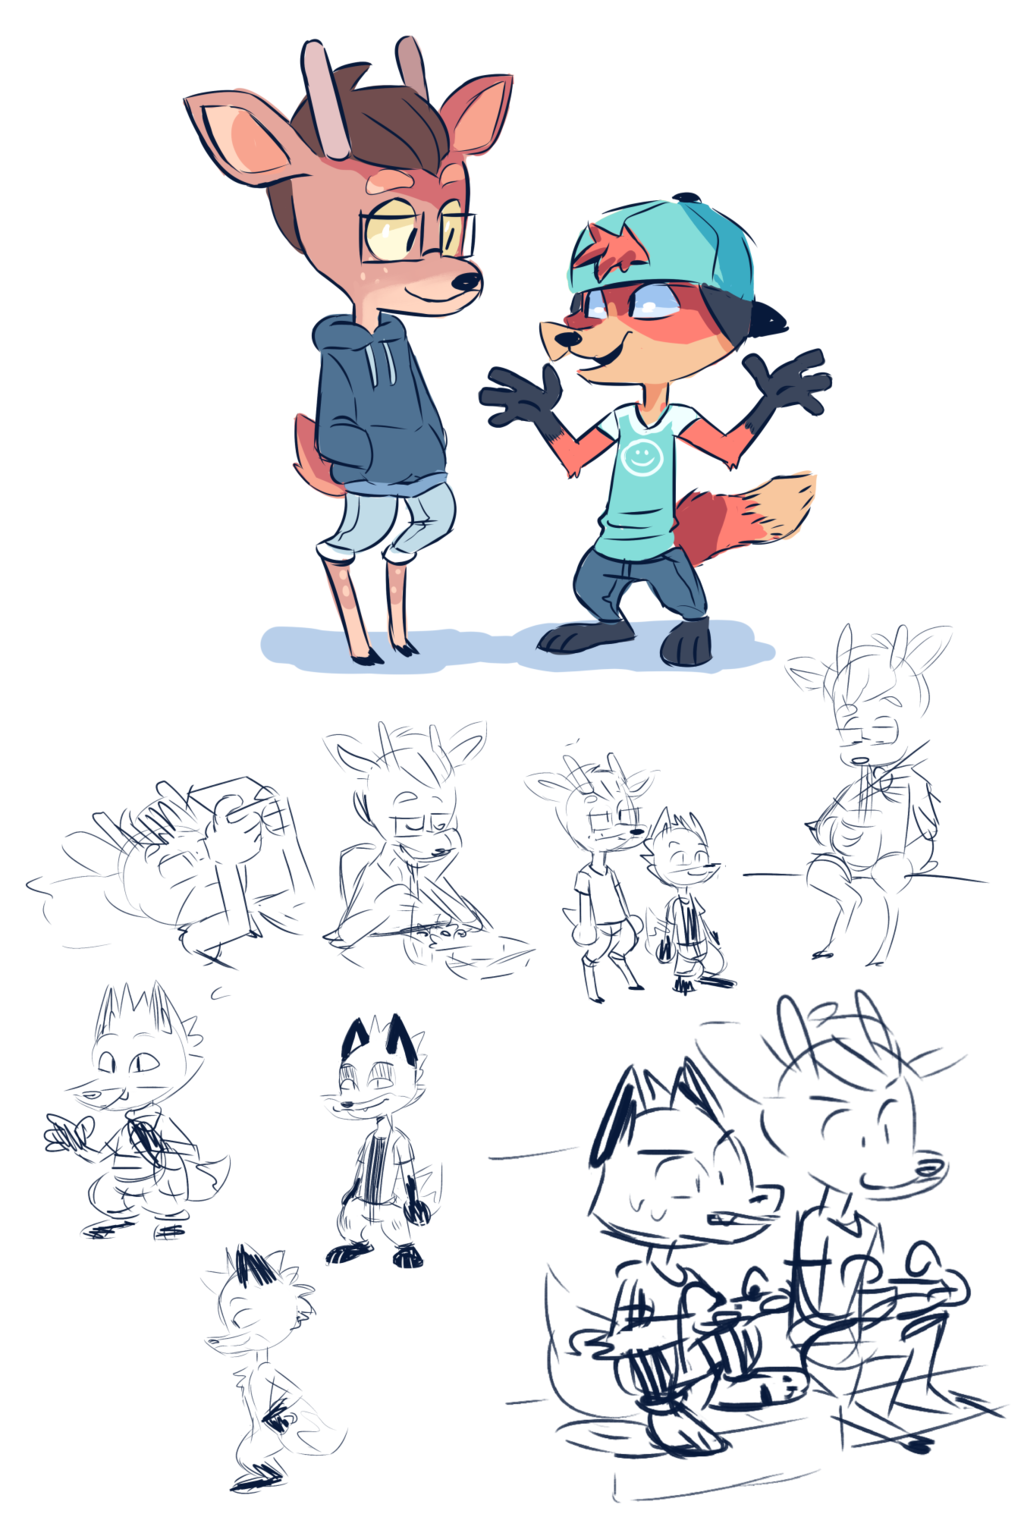 Most recent image: sketches